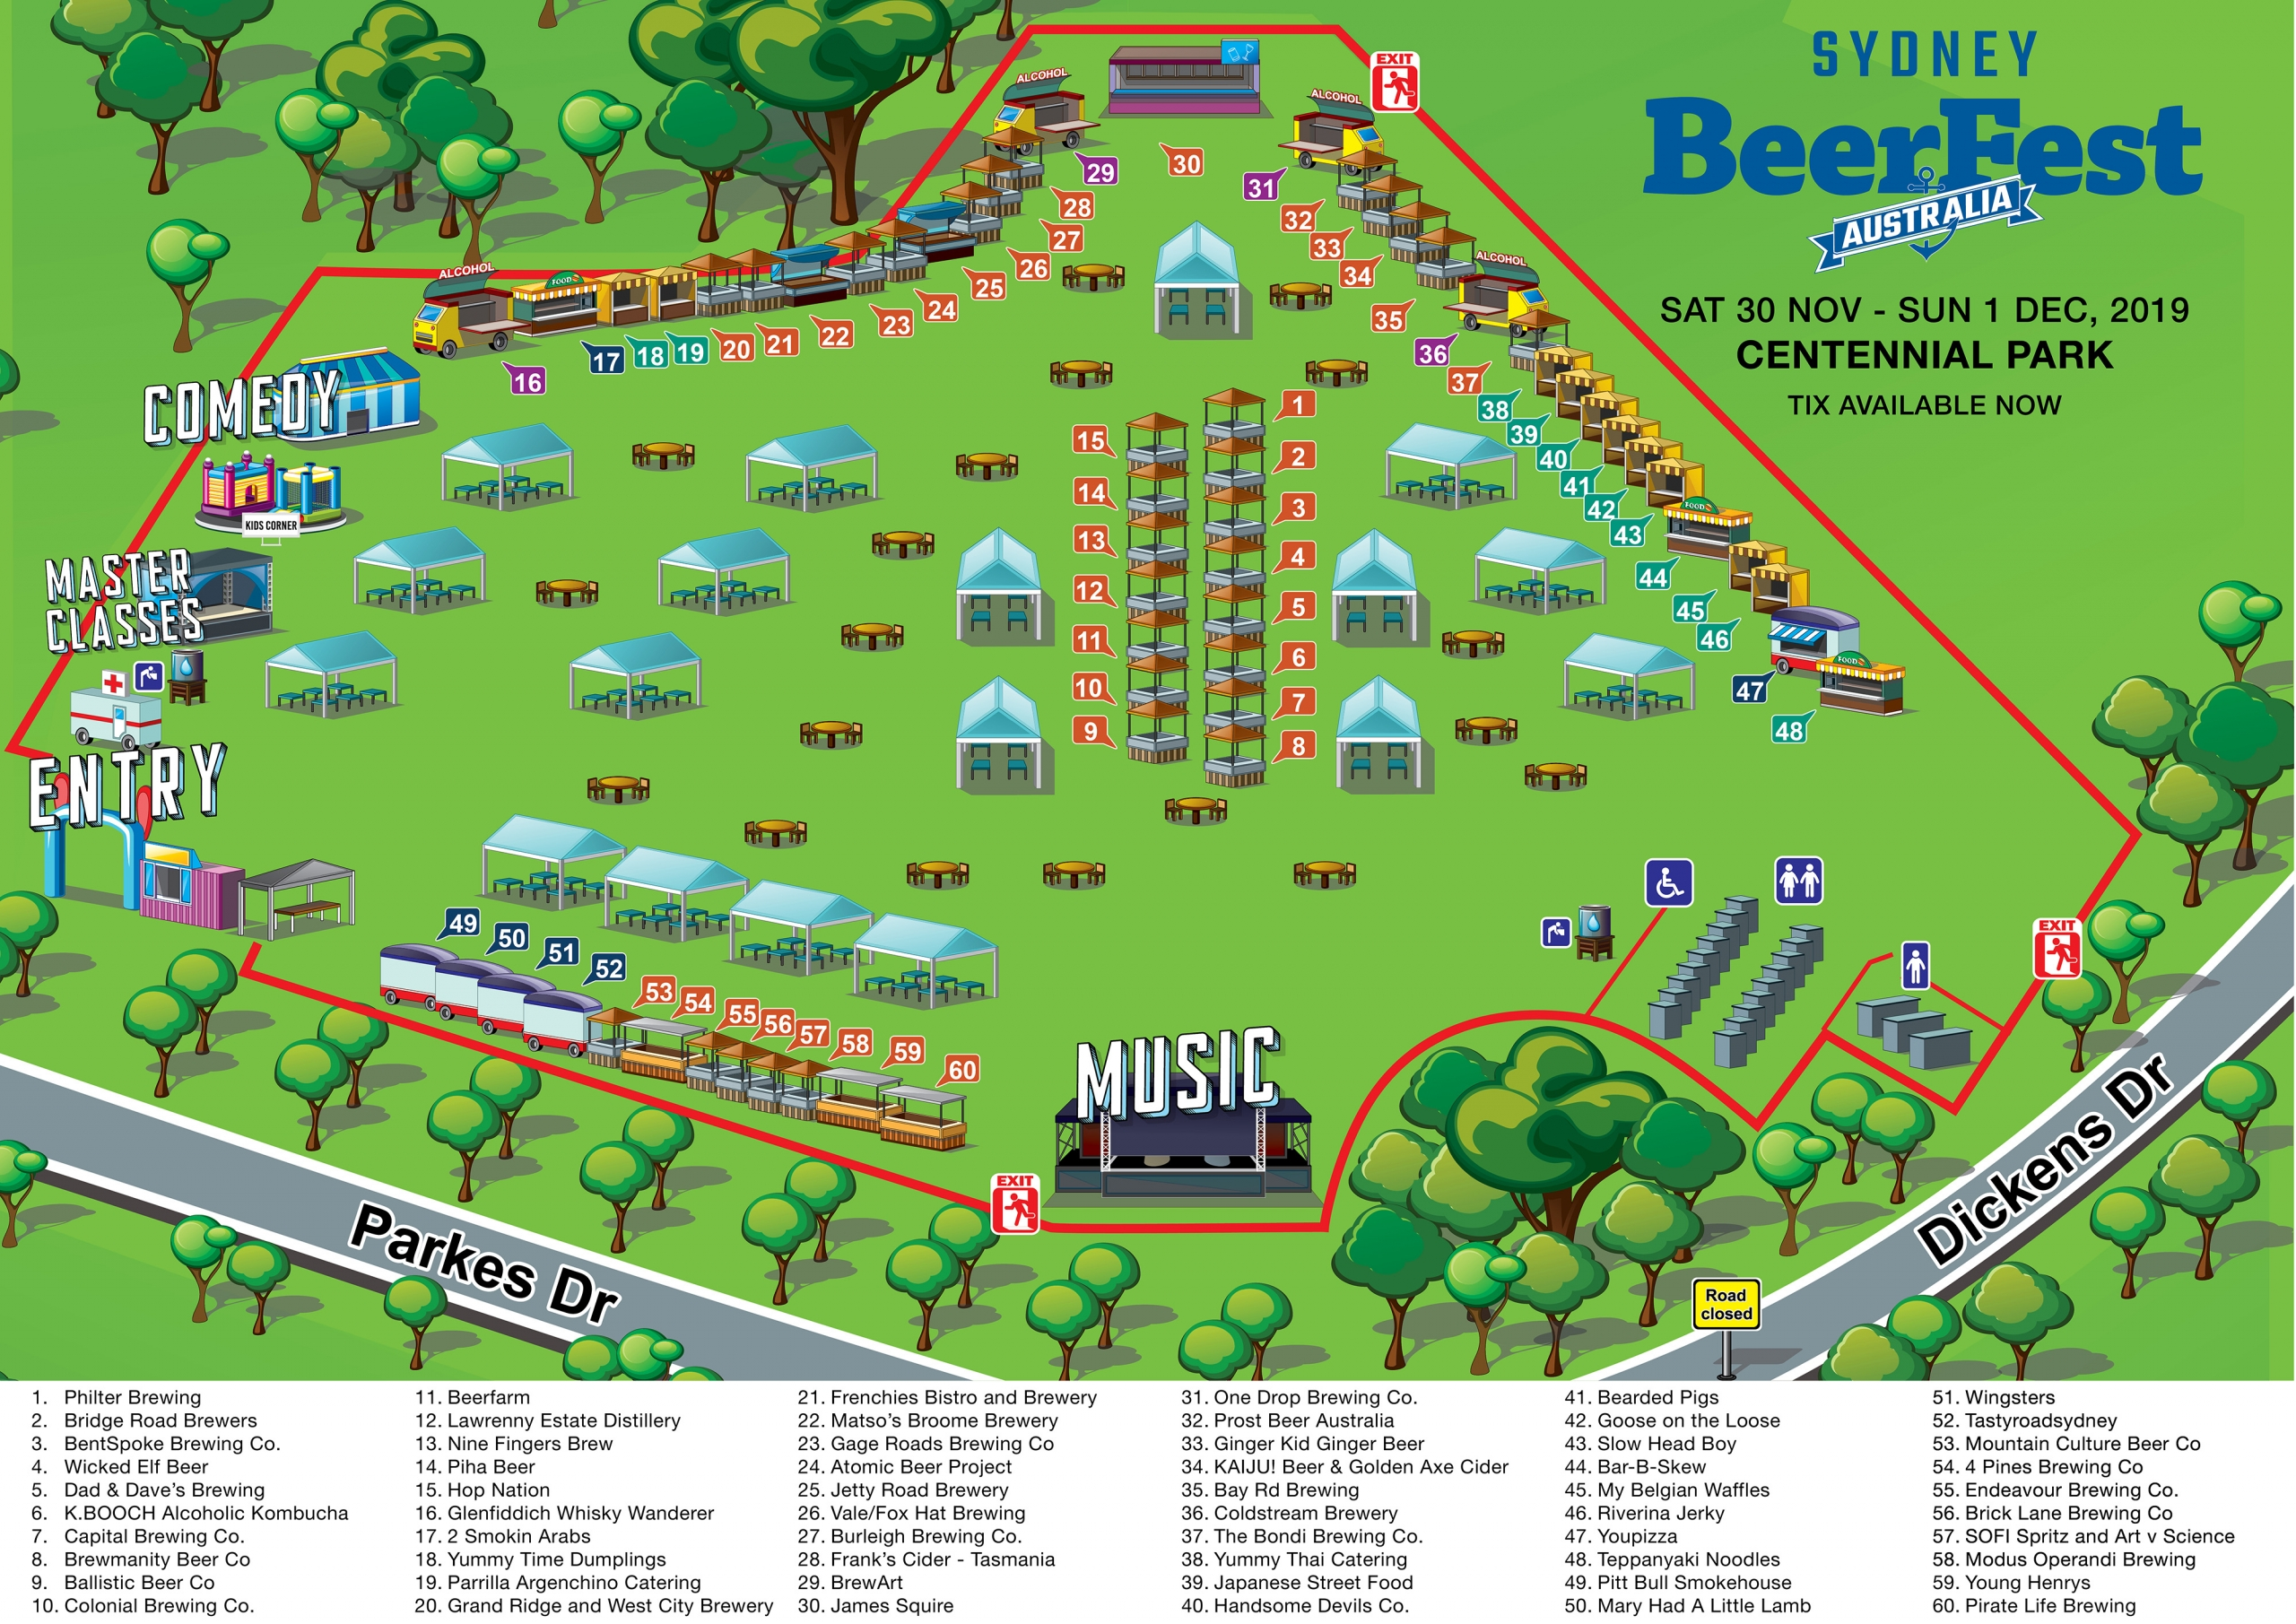 Festival map for Sydney BeerFest 2019